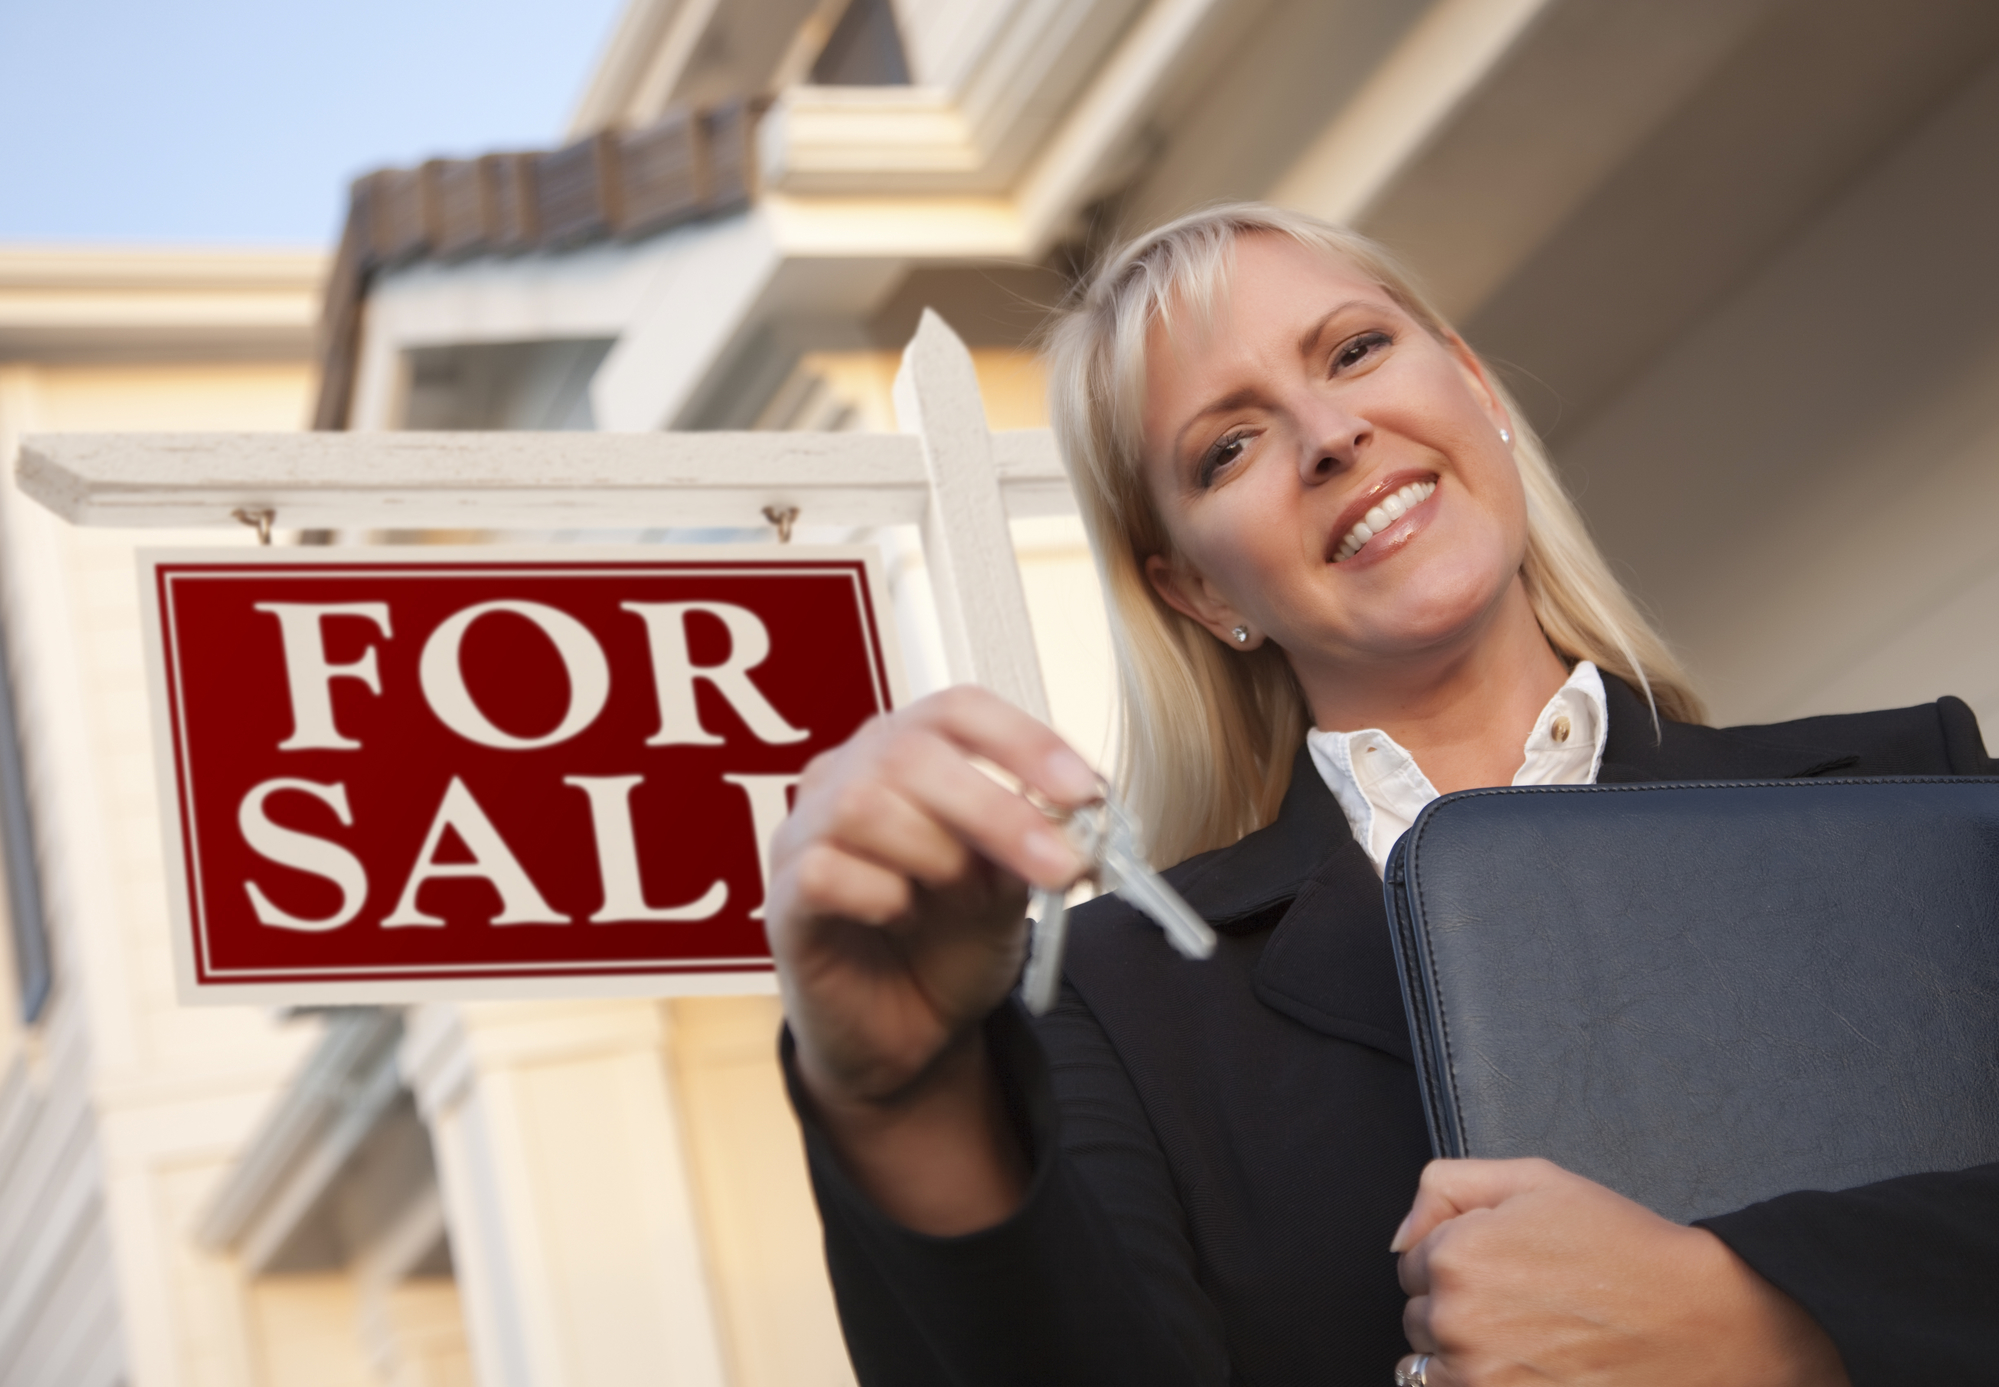 Ral Estate Brokers : Benefits of using a local real estate agent to sell